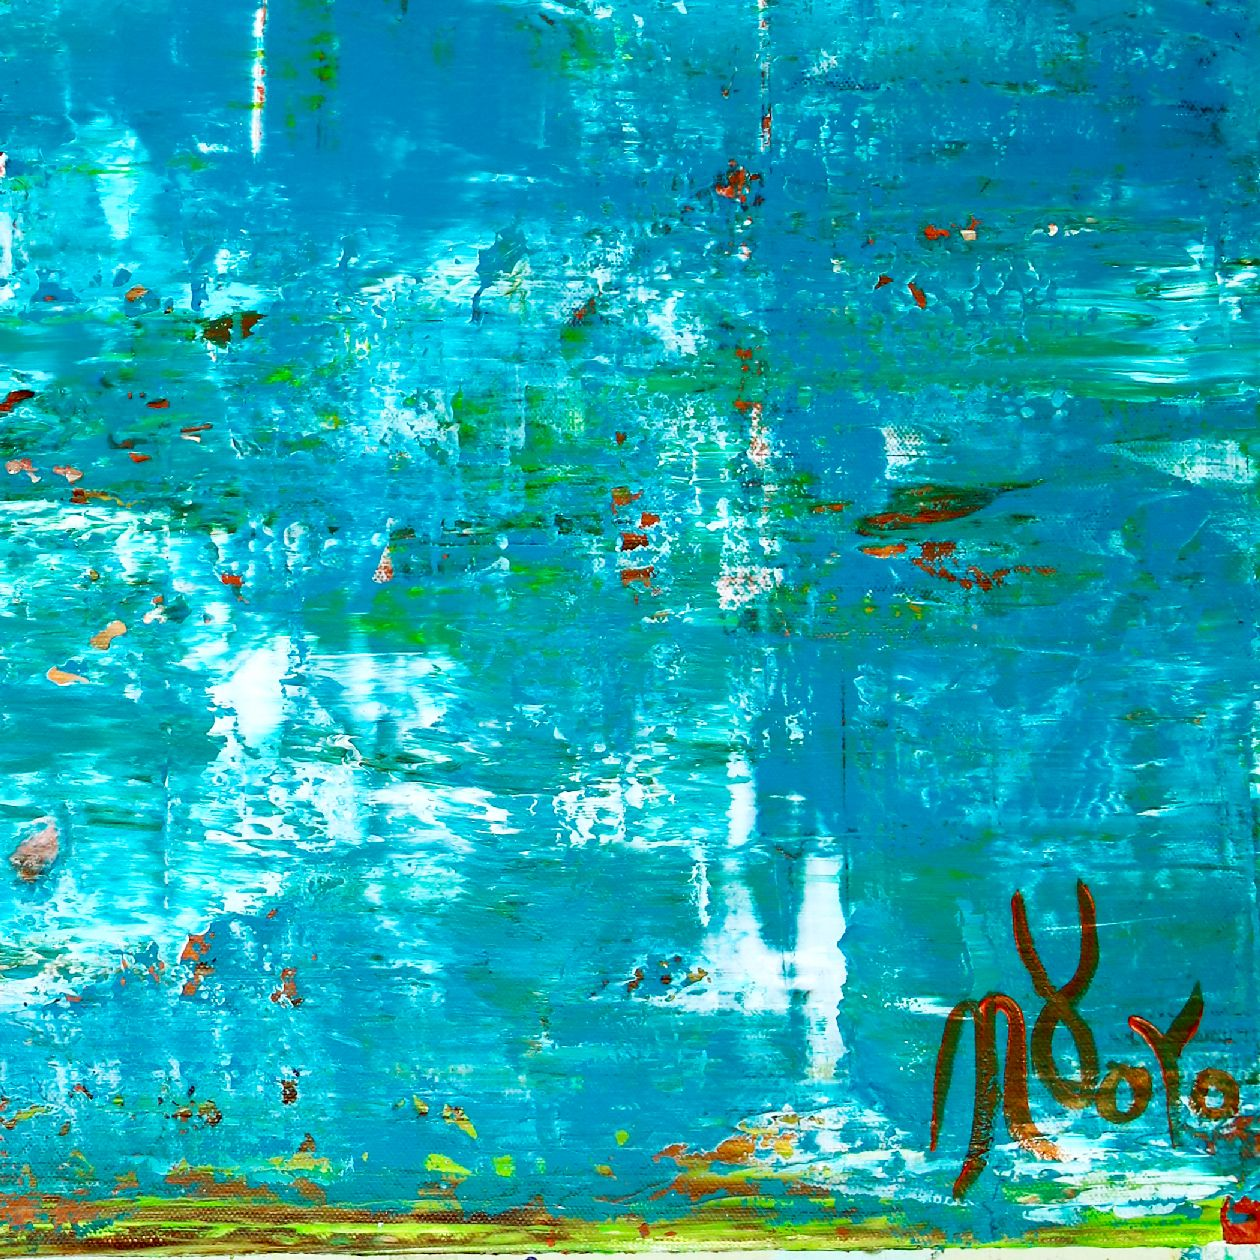 Sky walking 7 | Inspired by nature abstract (2020) Abstract Expressionist painting by Nestor Toro